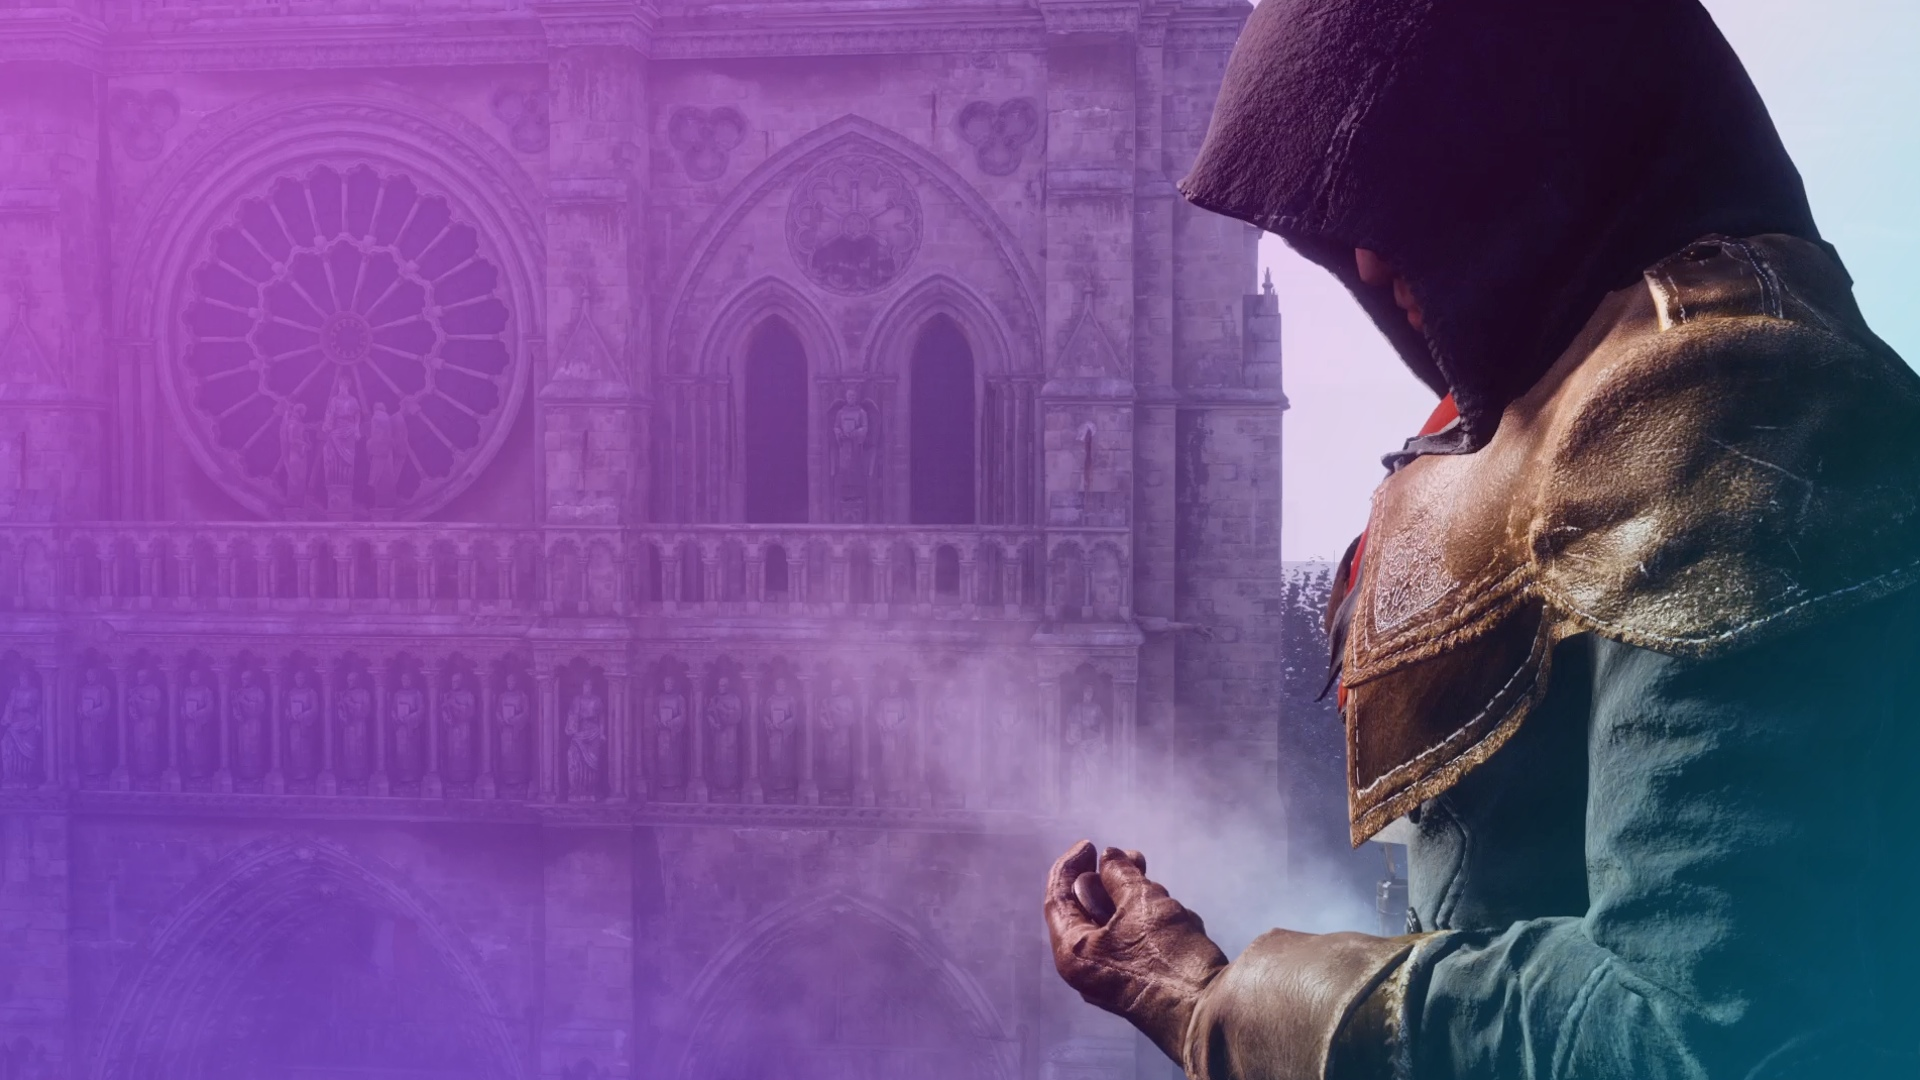 Assassin's Creed Unity will reportedly feature four-player narrative co-op